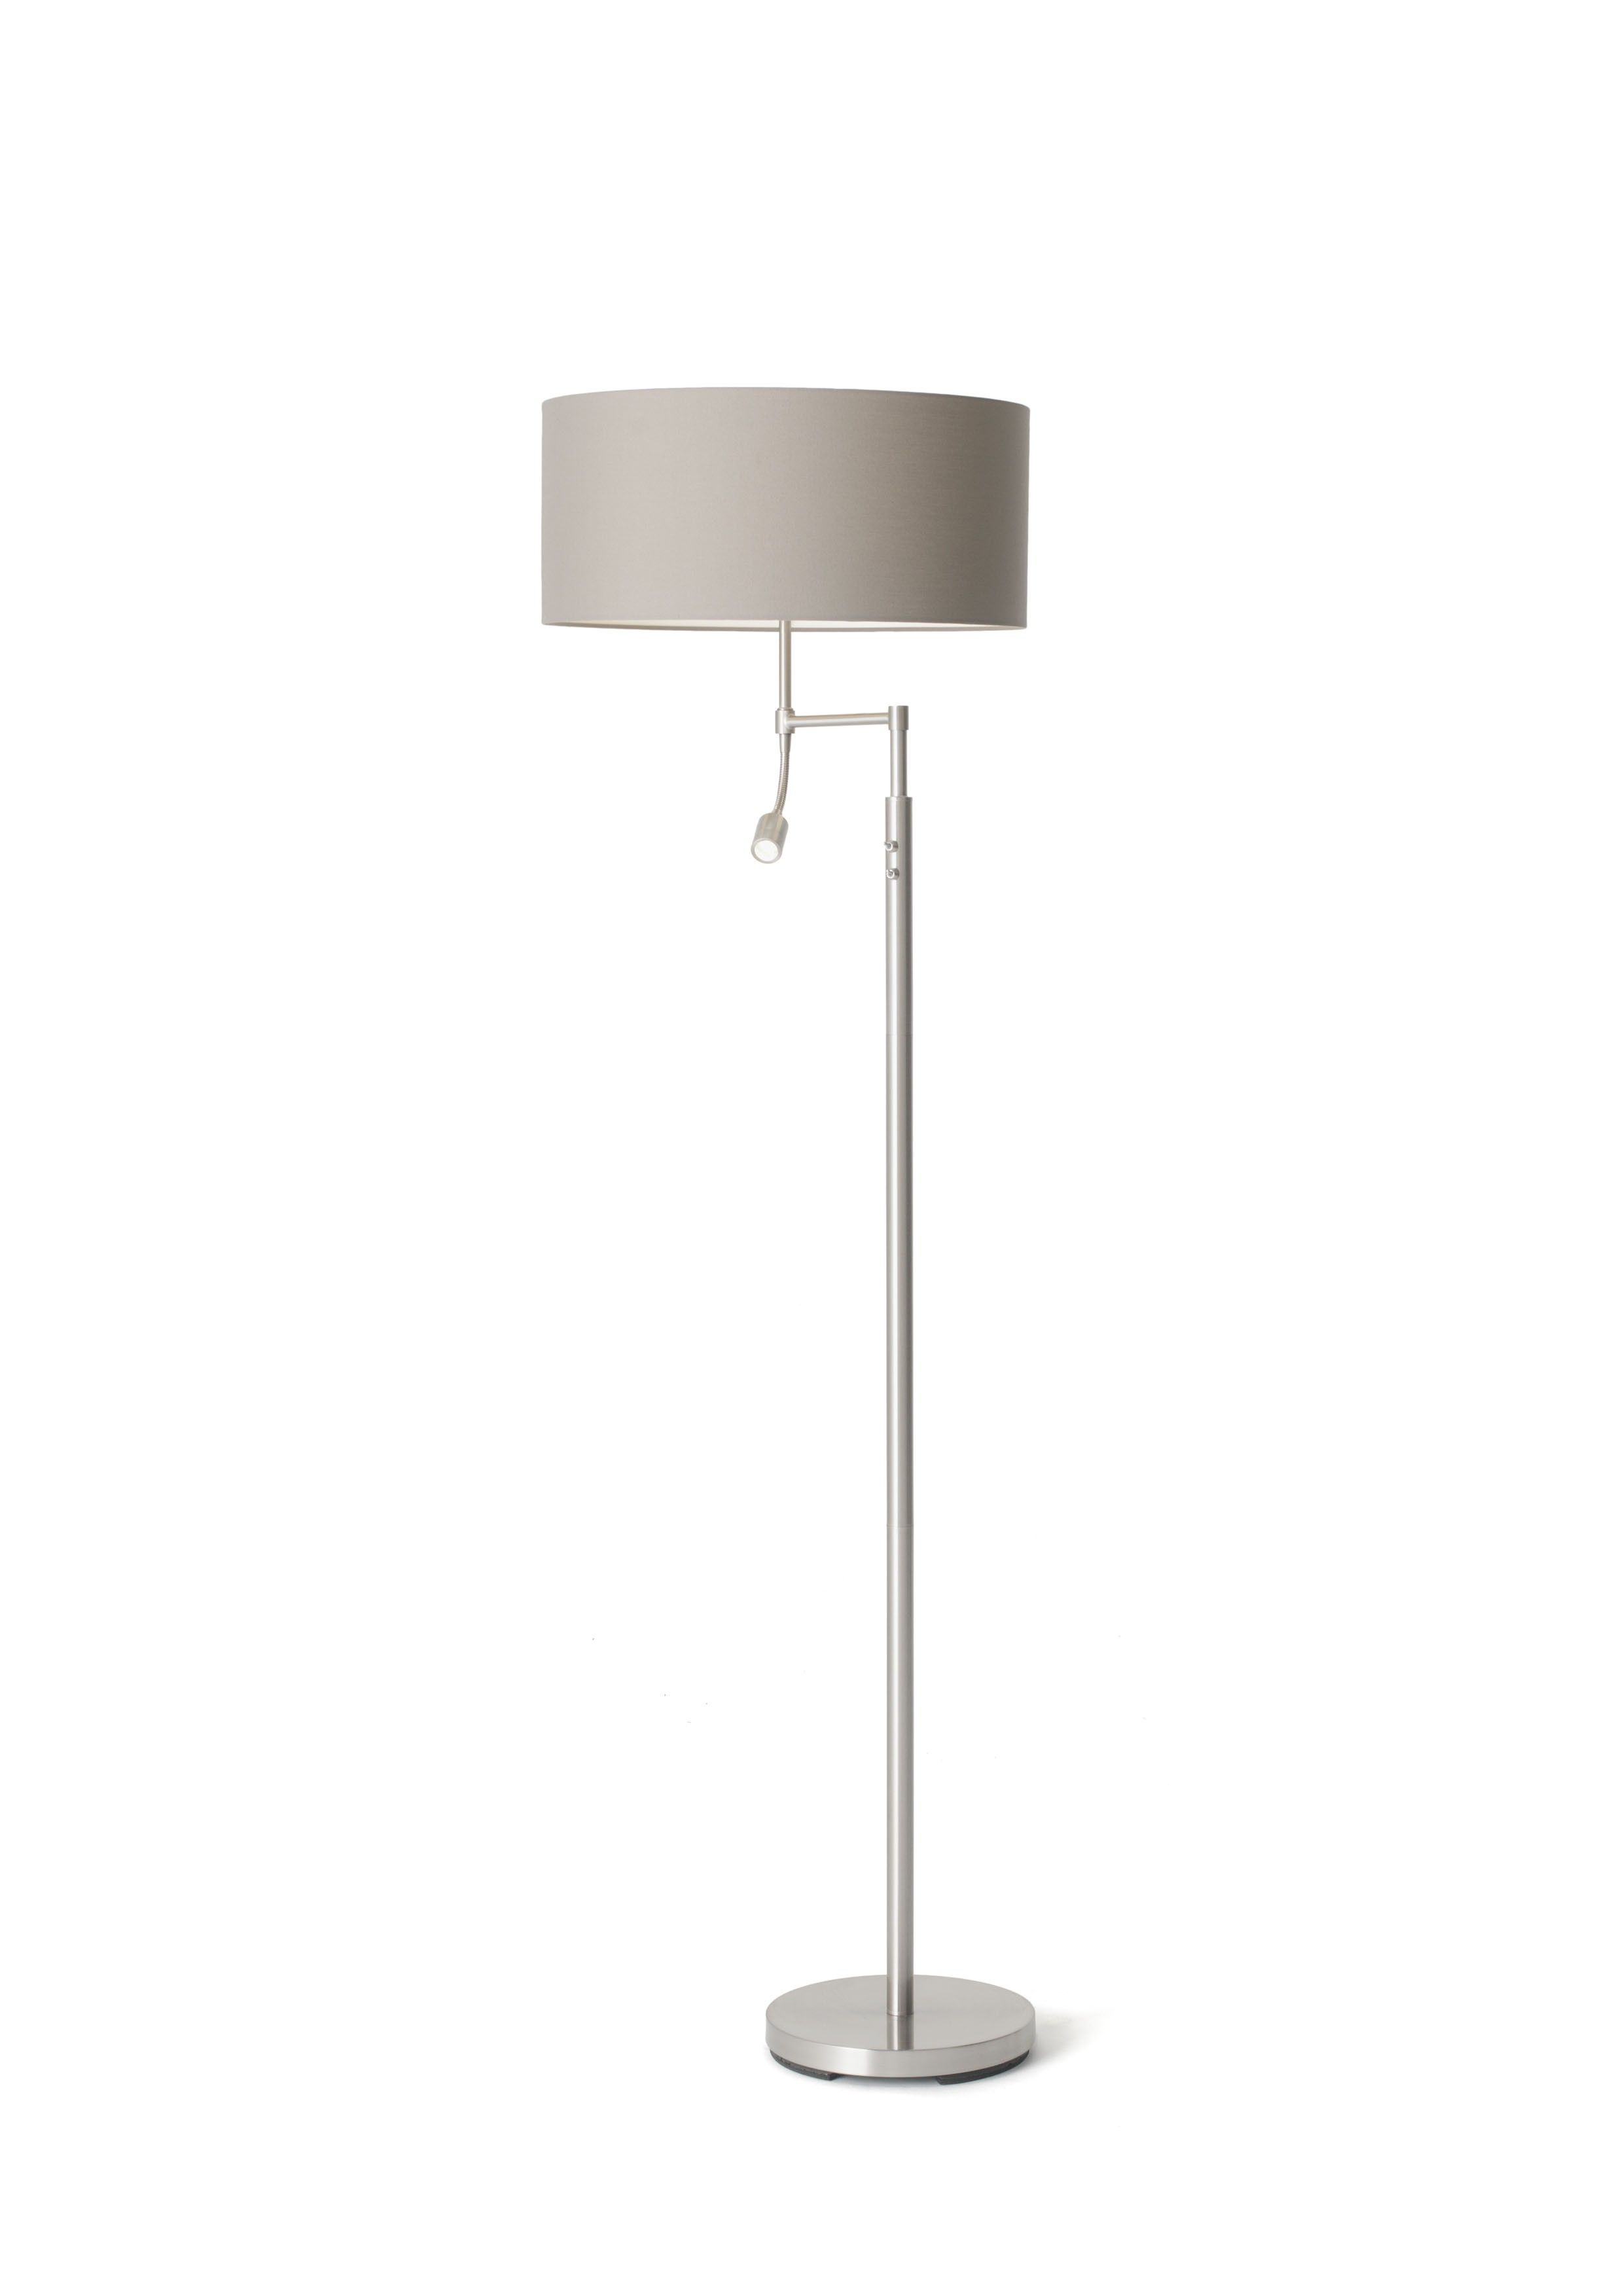 Oslo floor lamp with polycotton grey shade aflair lighting oslo floor lamp with polycotton grey shade aloadofball Images